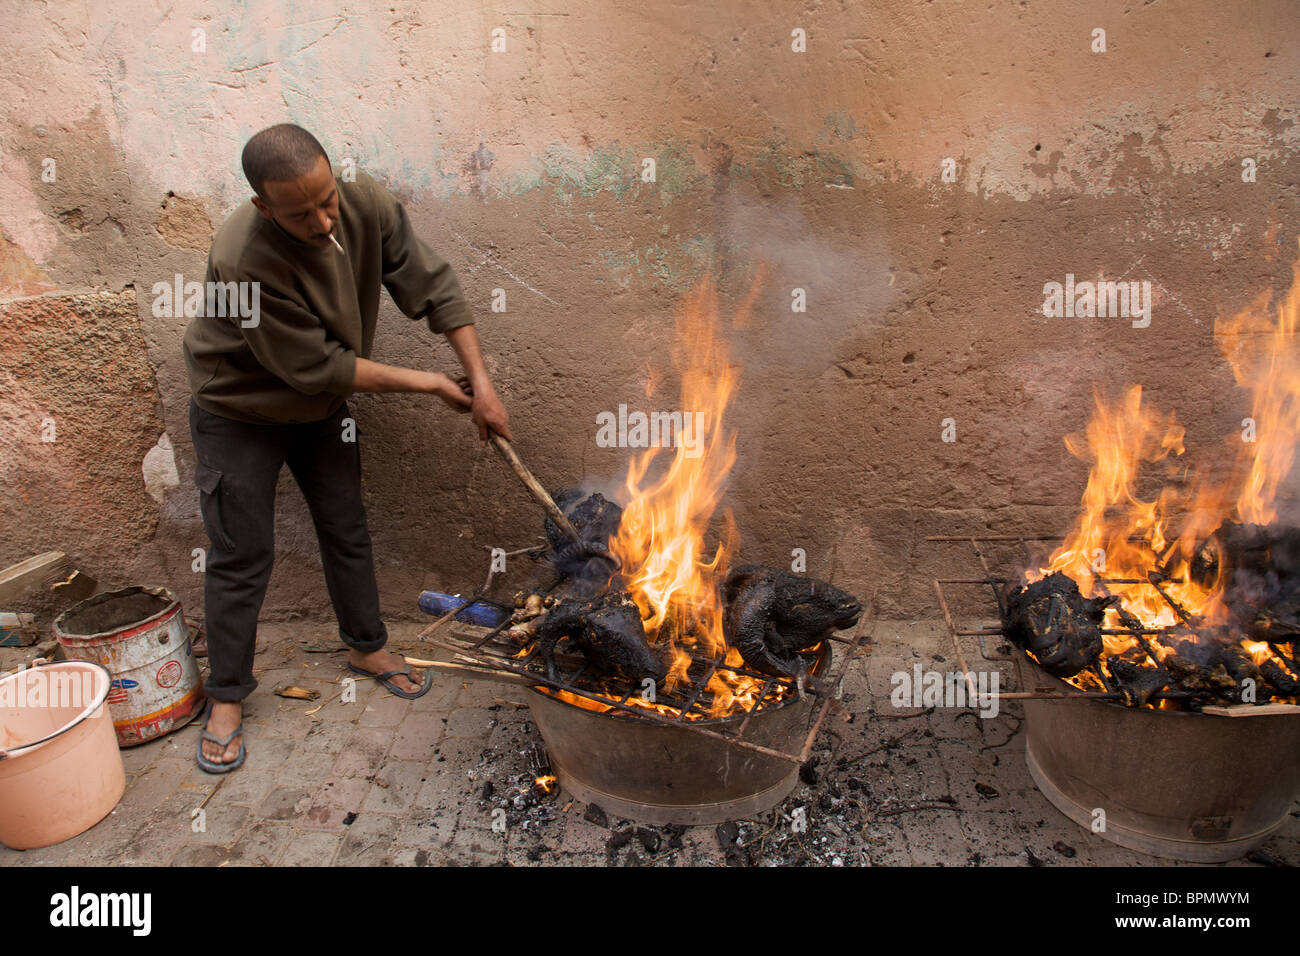 A man stoking the bbq's on the day of Eid al-Adha, Marrakech, Morocco  North Africa - Stock Image